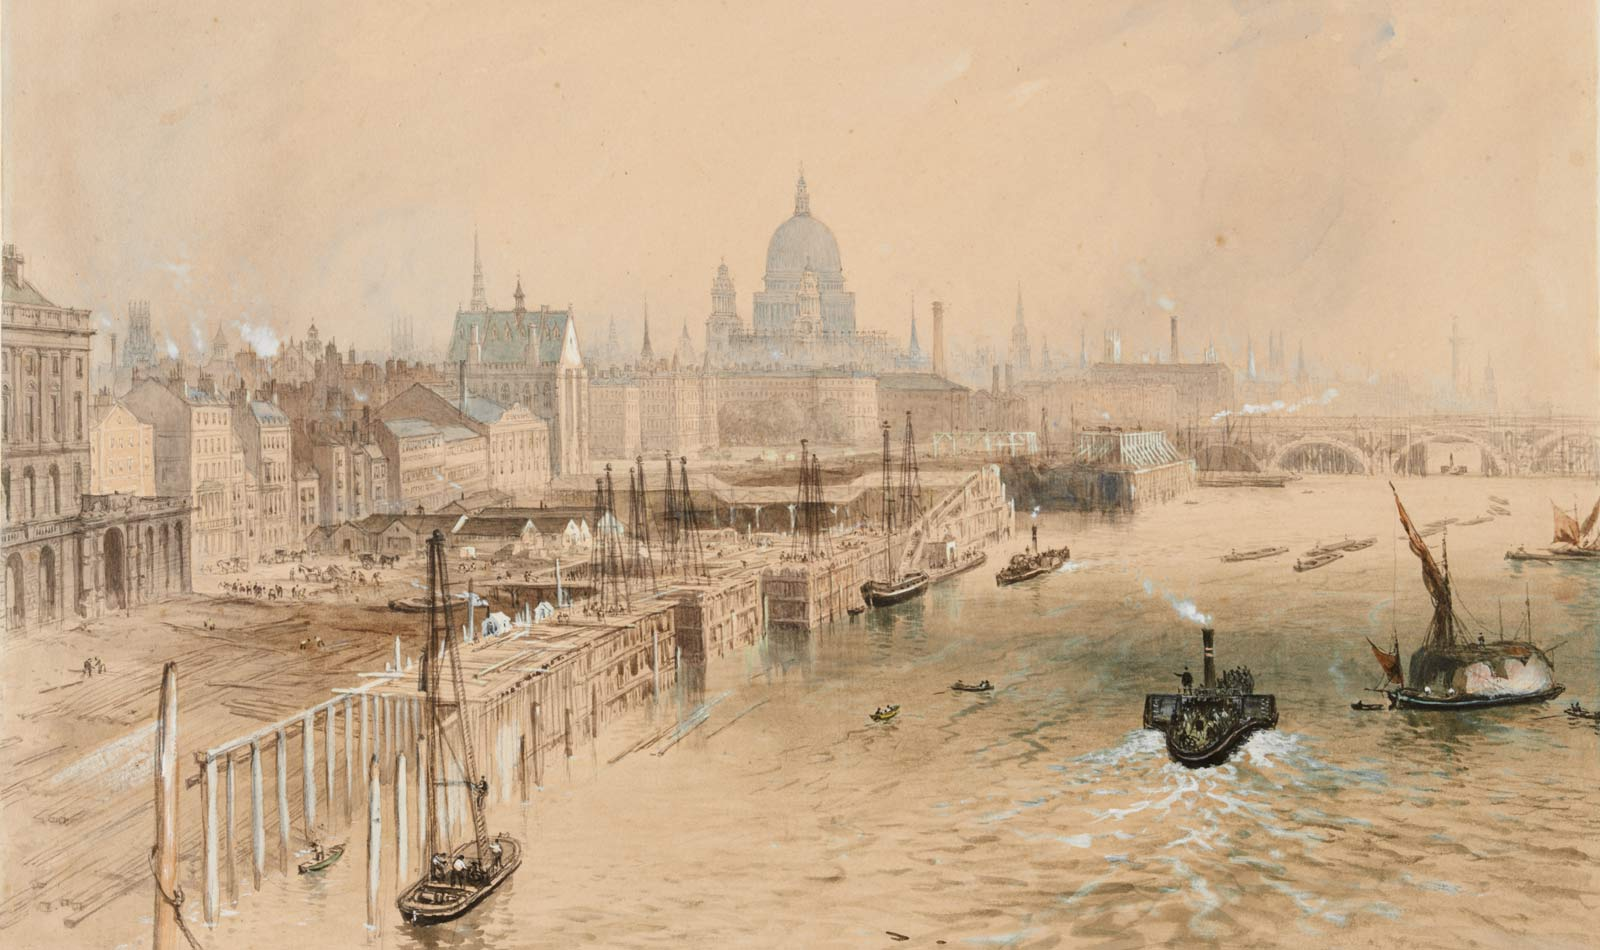 Atmospheric depiction of 'The Thames Embankment Works between Waterloo and Blackfriars Bridges'. Signed and dated. Construction of timber framework for the embankment. Piles of timber lie on shore & figures are at work on shore & on scaffolding. Steam & sailing boats are on river. In distance is Blackfriars Bridge & dome of St. Paul's.